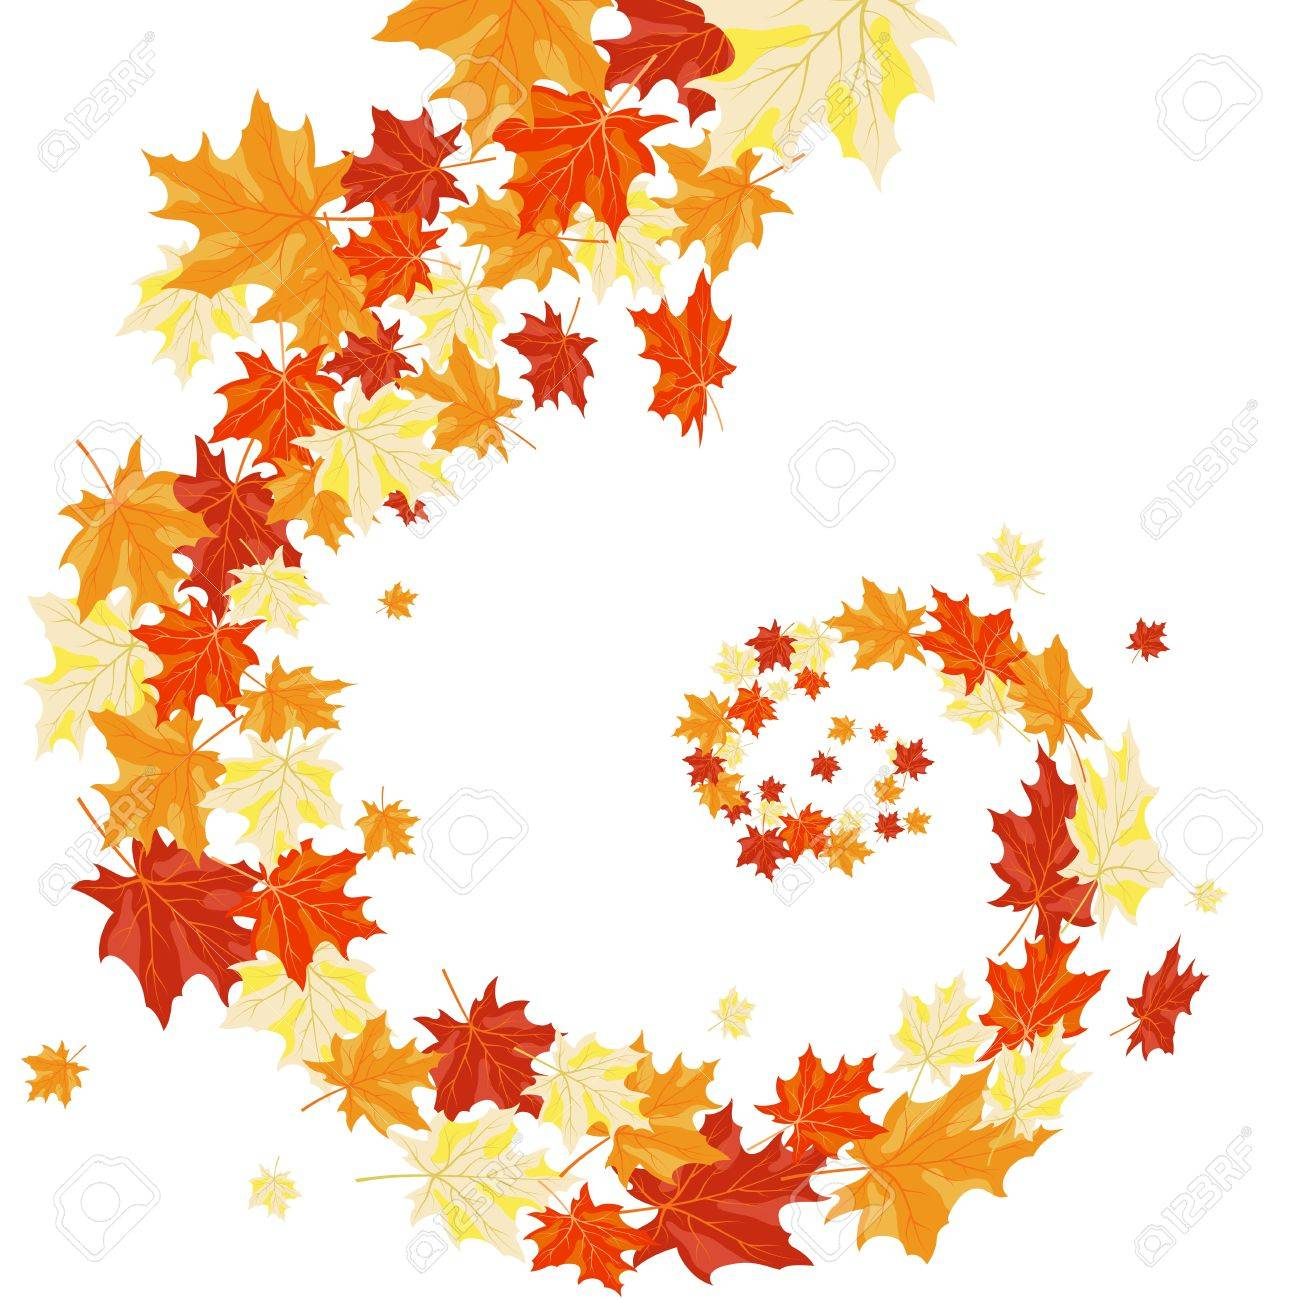 Autumn maples falling leaves background. Vector illustration. Stock Vector - 14899198